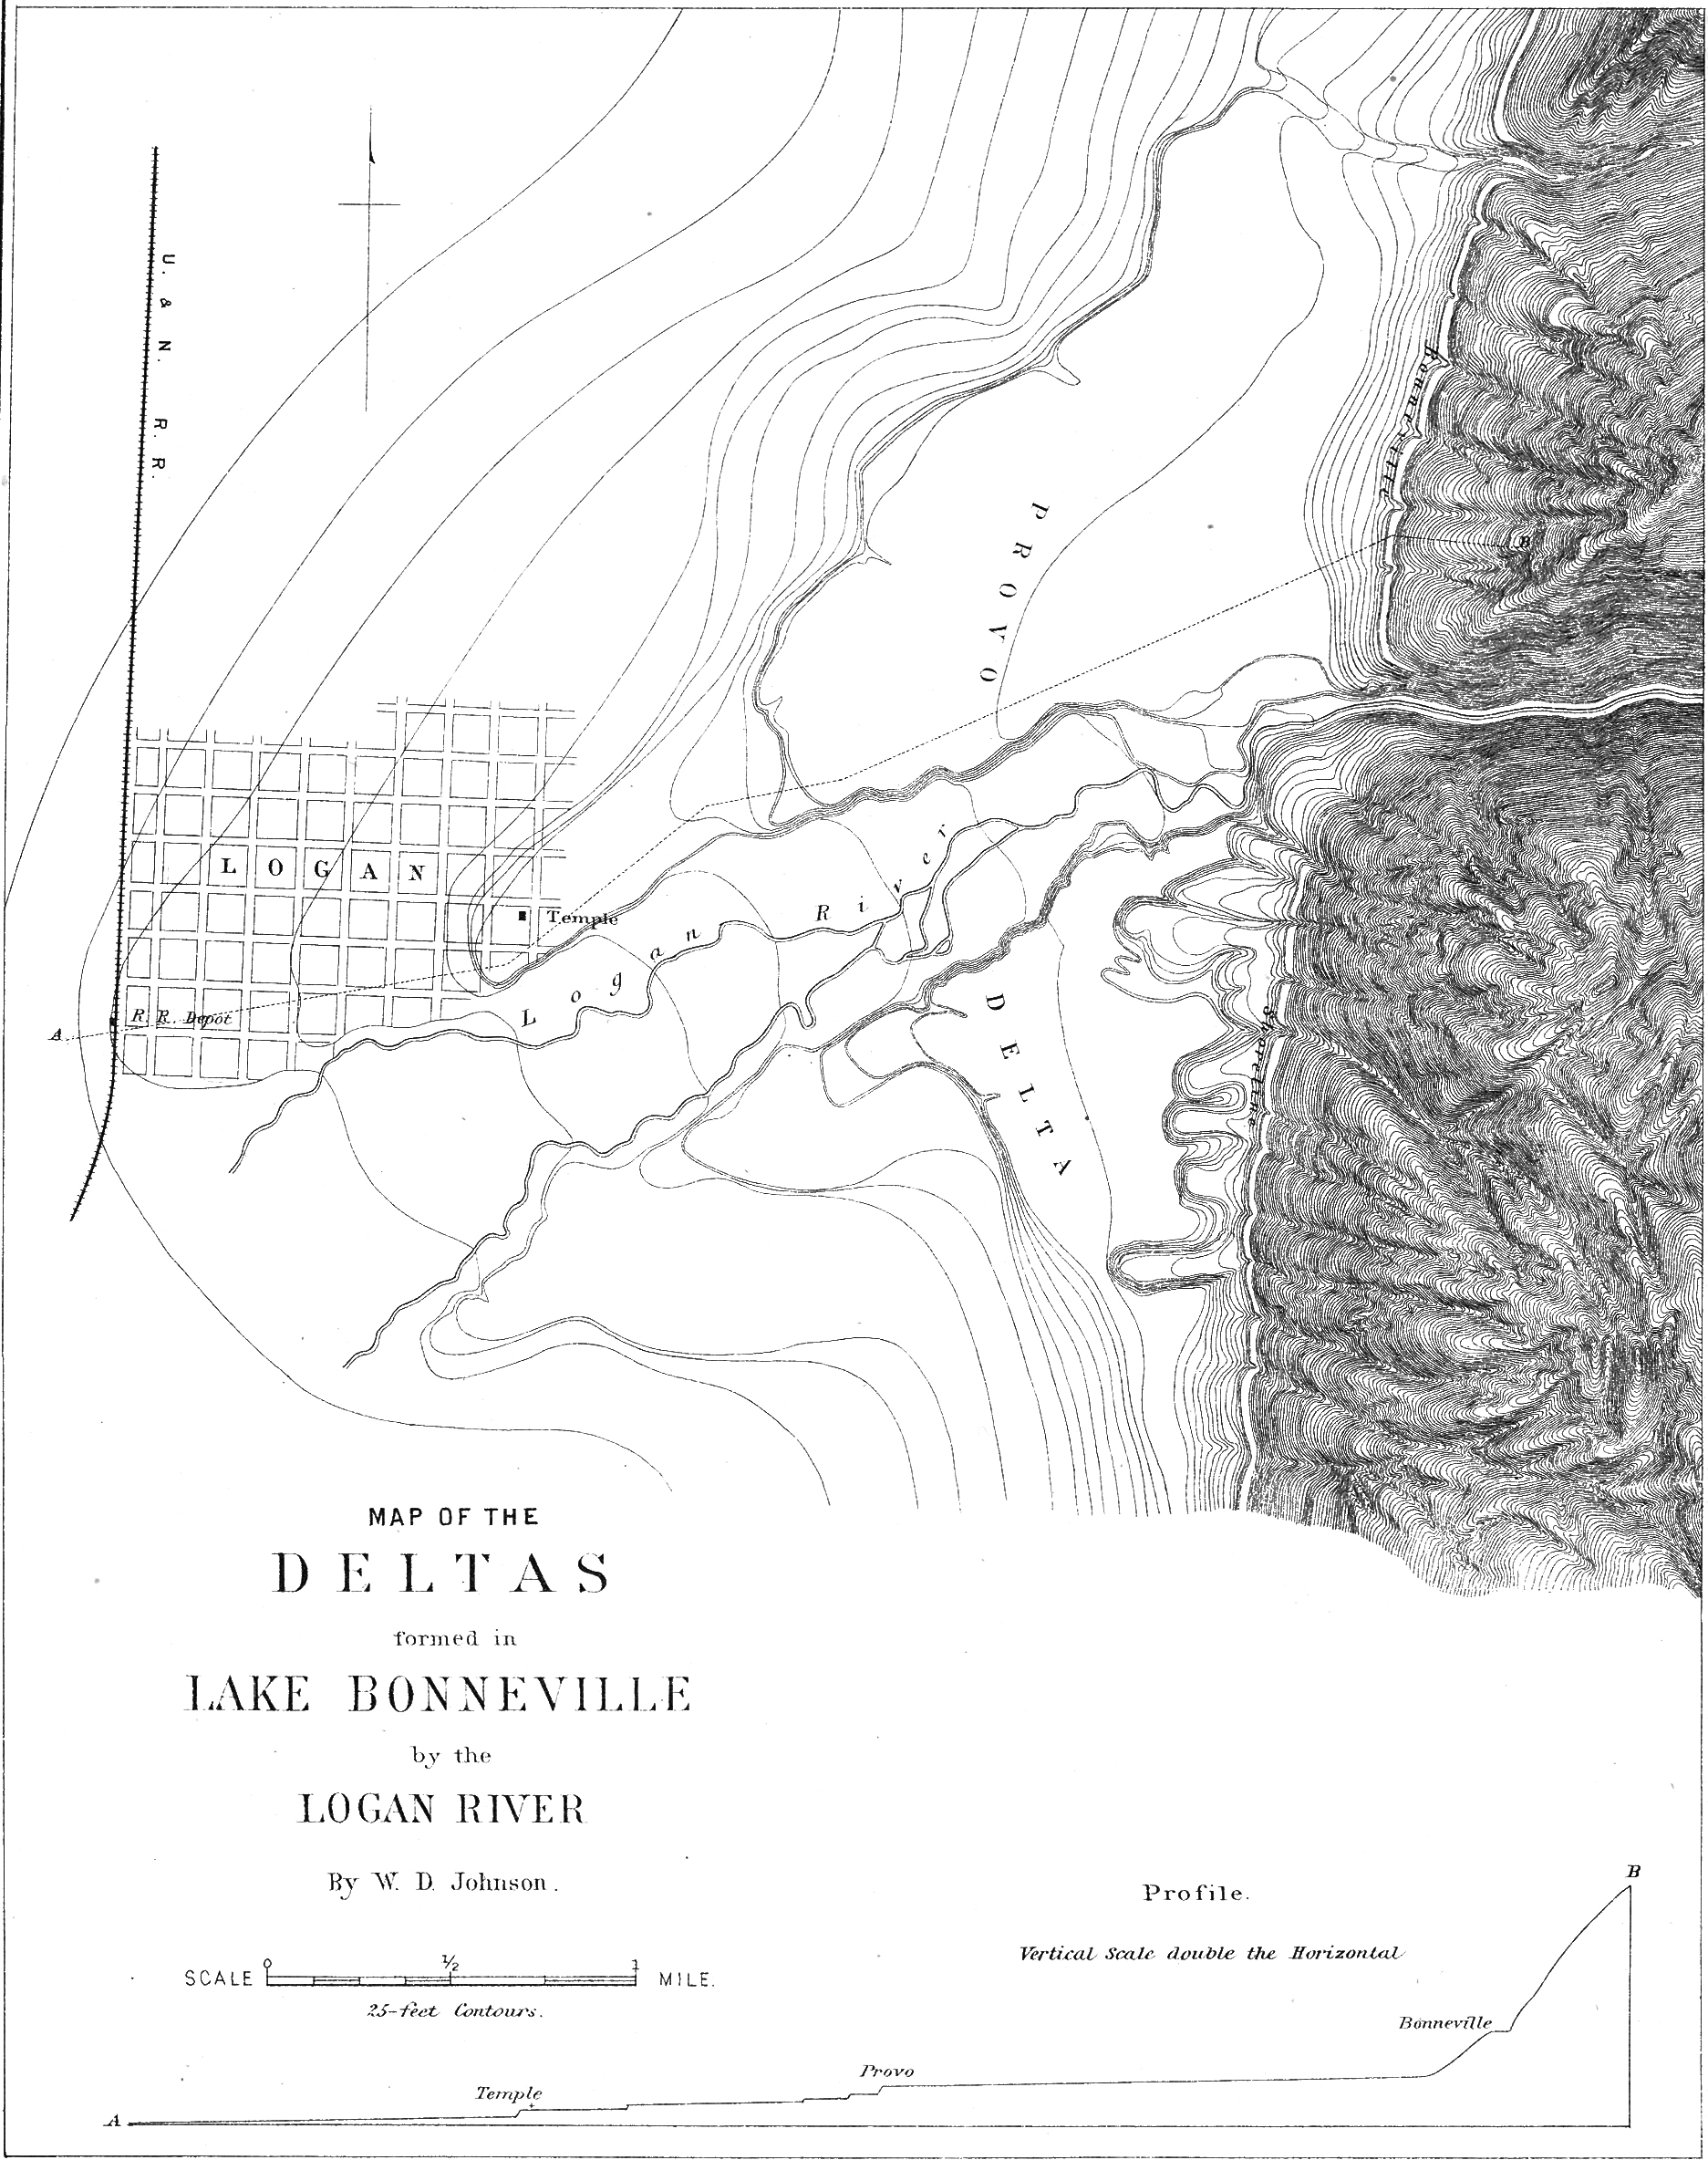 Contours of the Logan Delta, incised by the Logan River.